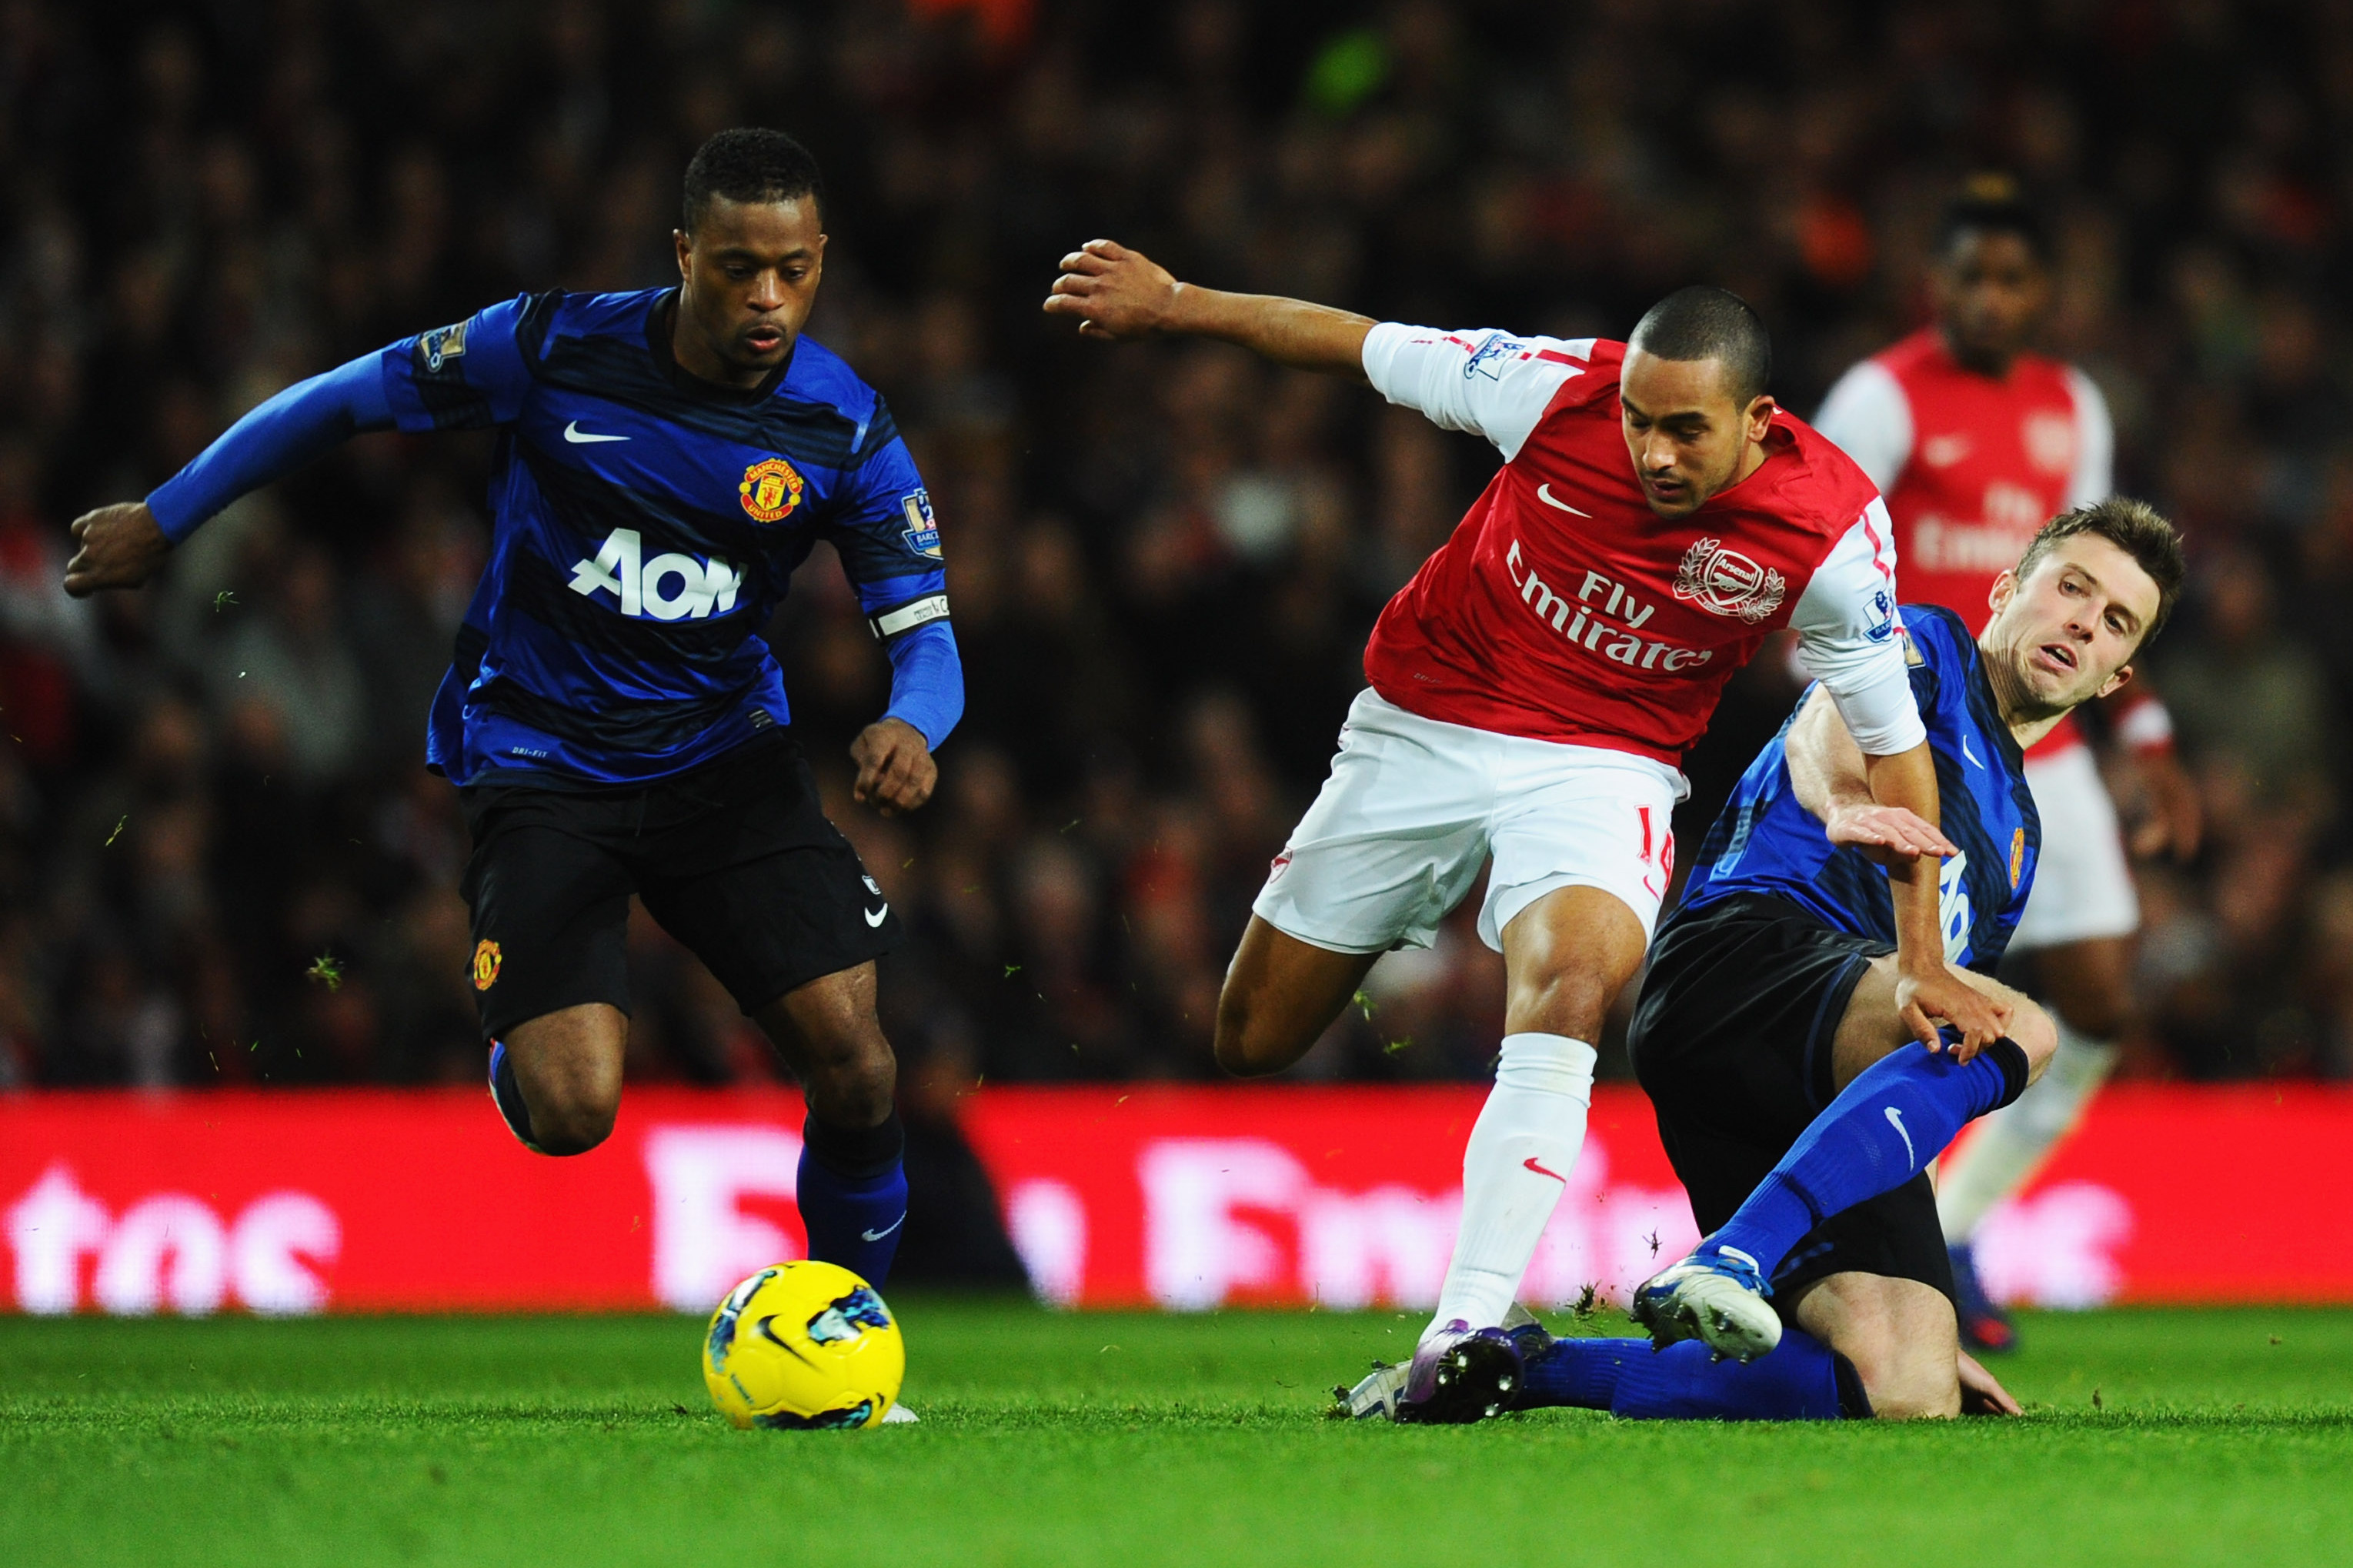 Manchester United Vs Arsenal Date Time Live Stream Tv Info And Preview Bleacher Report Latest News Videos And Highlights